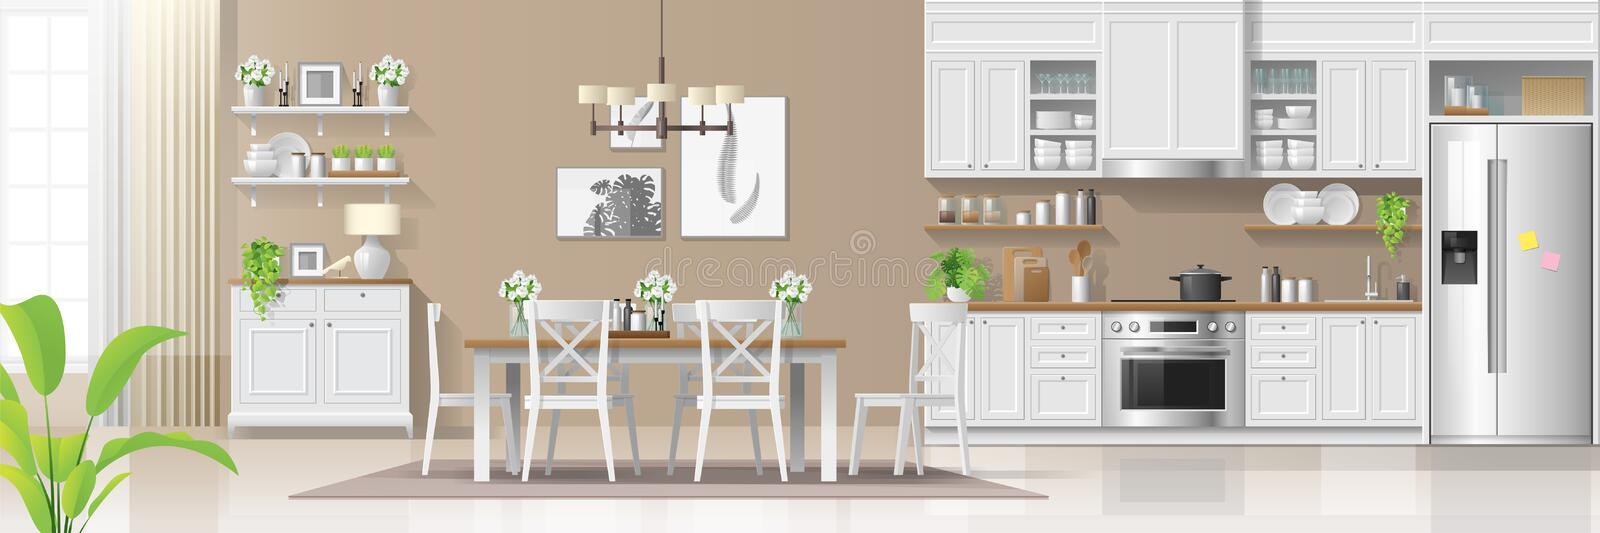 Modern rustic house interior background with kitchen and dining room combination royalty free illustration